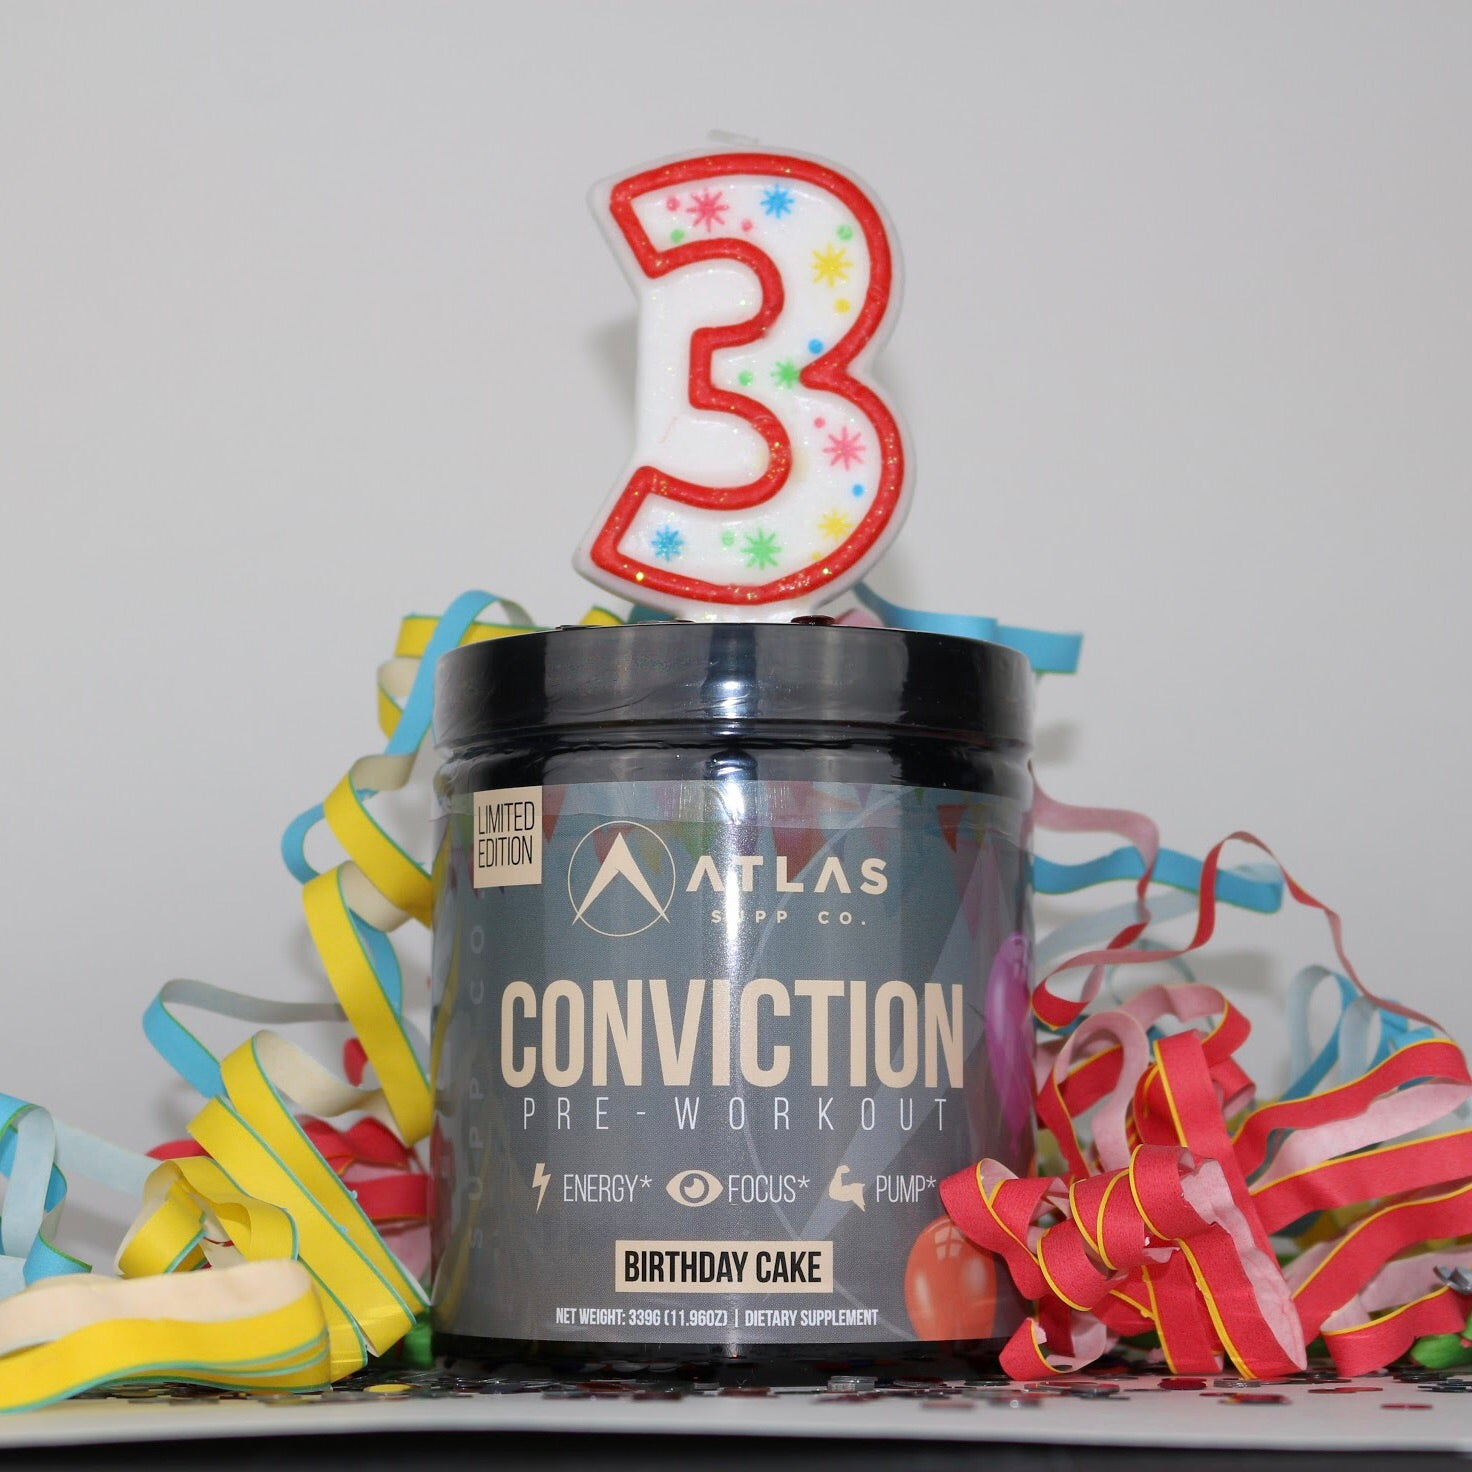 LIMITED EDITION Conviction Birthday Cake Atlas Supp Co